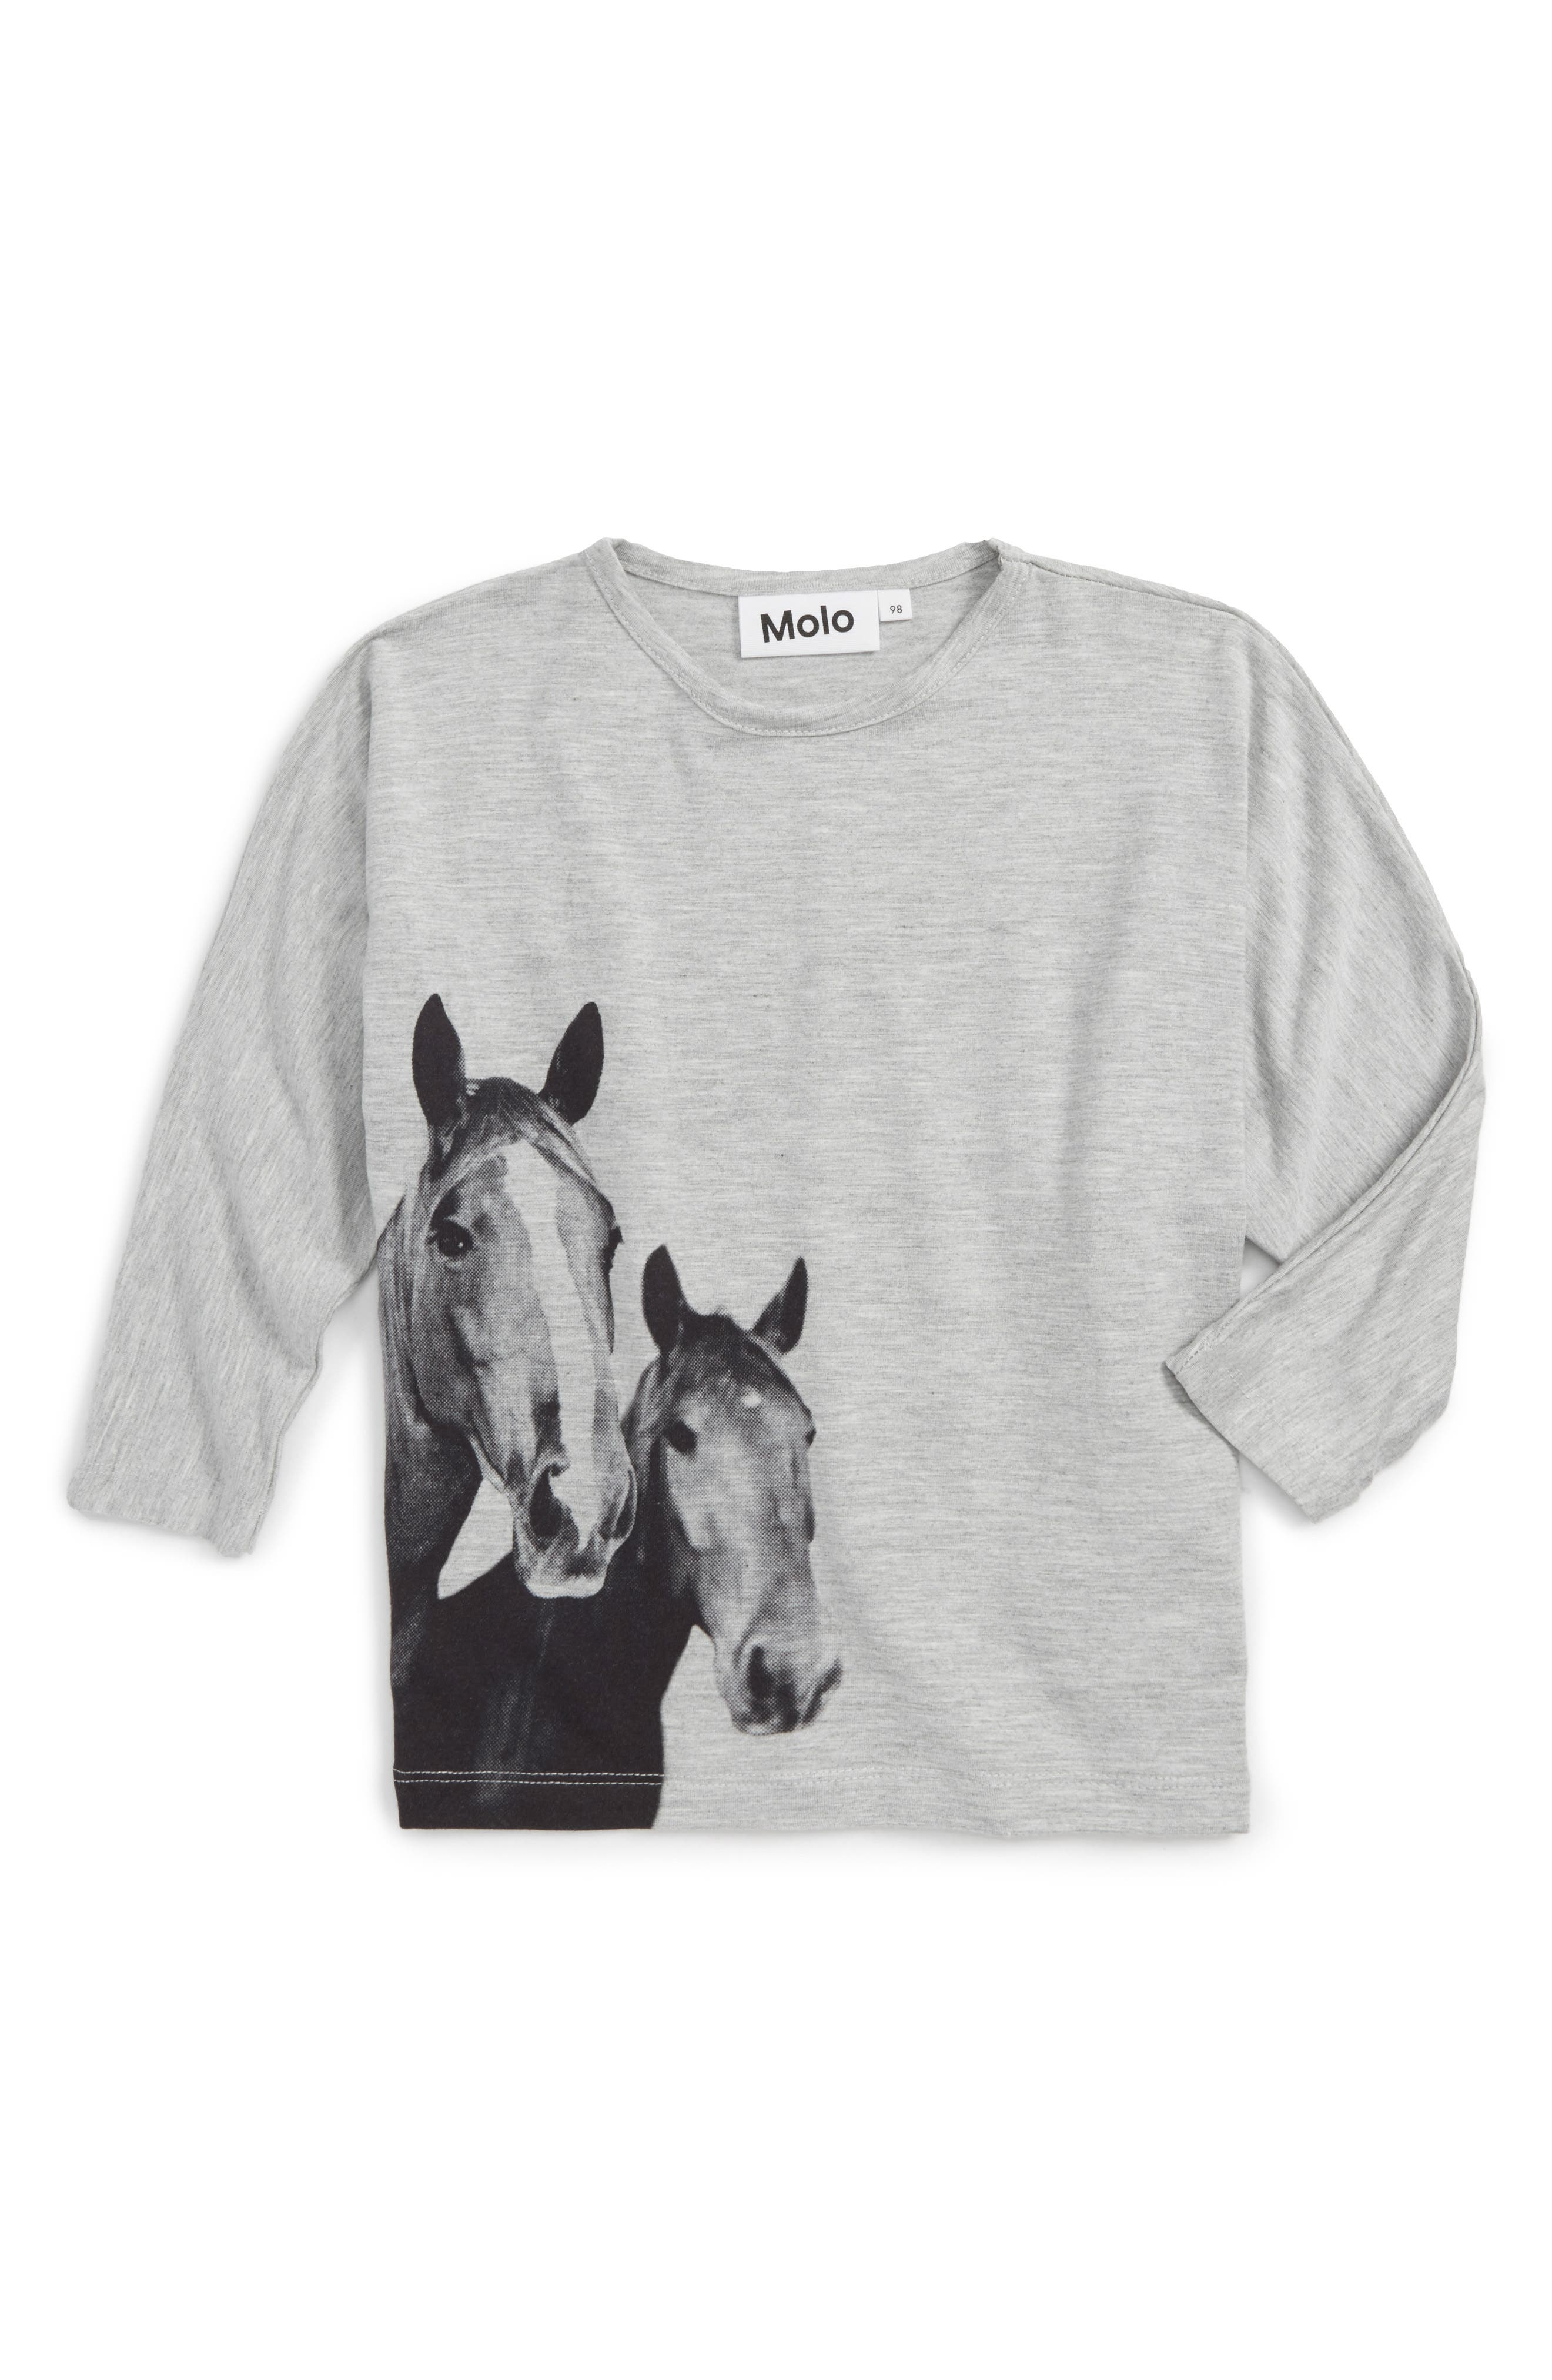 Alternate Image 1 Selected - Molo Rosey Horse Graphic Tee (Toddler Girls, Little Girls & Big Girls)